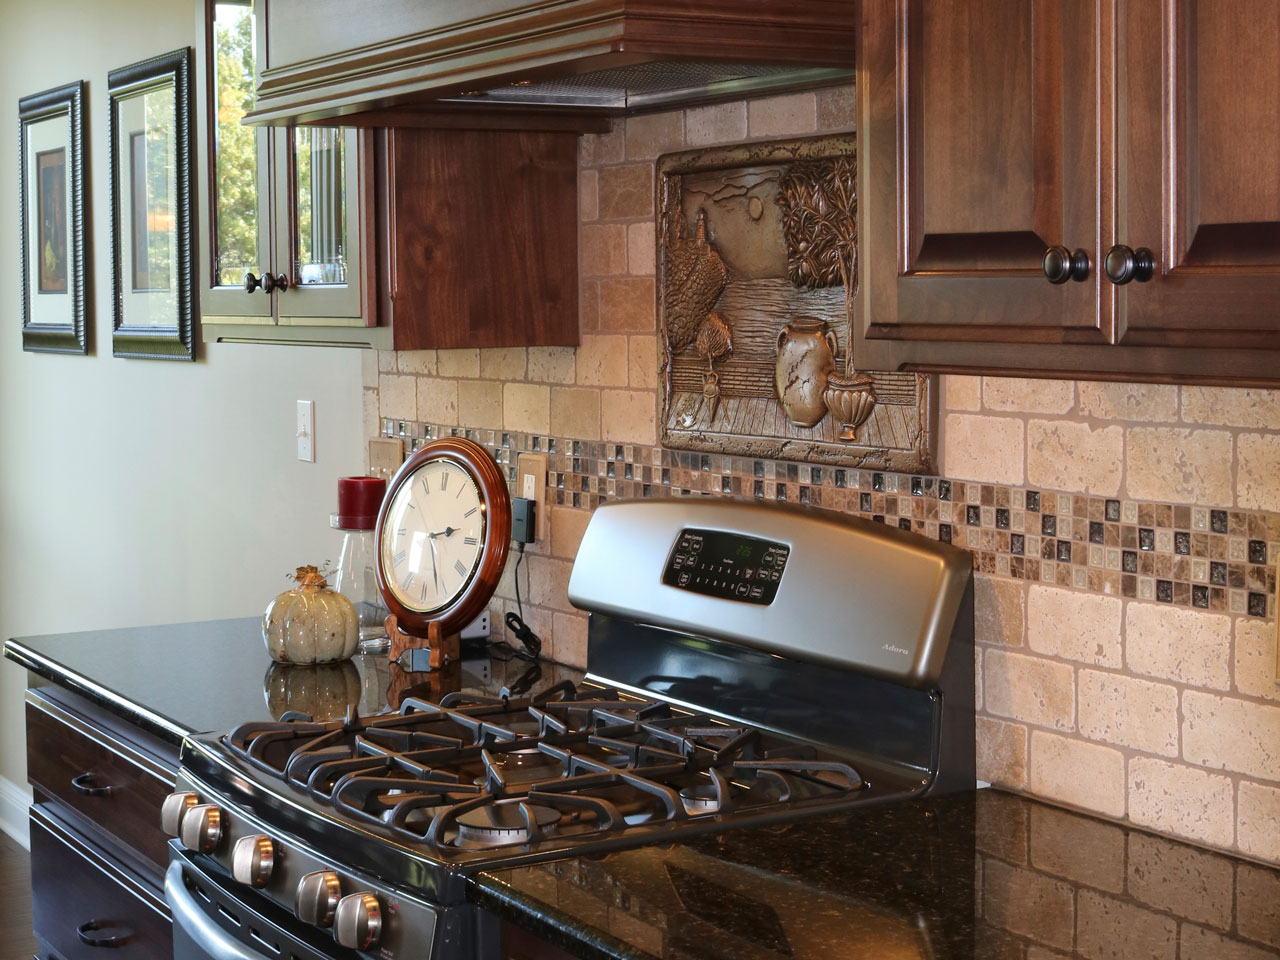 Here are some custom countertops in a remodeled kitchen.